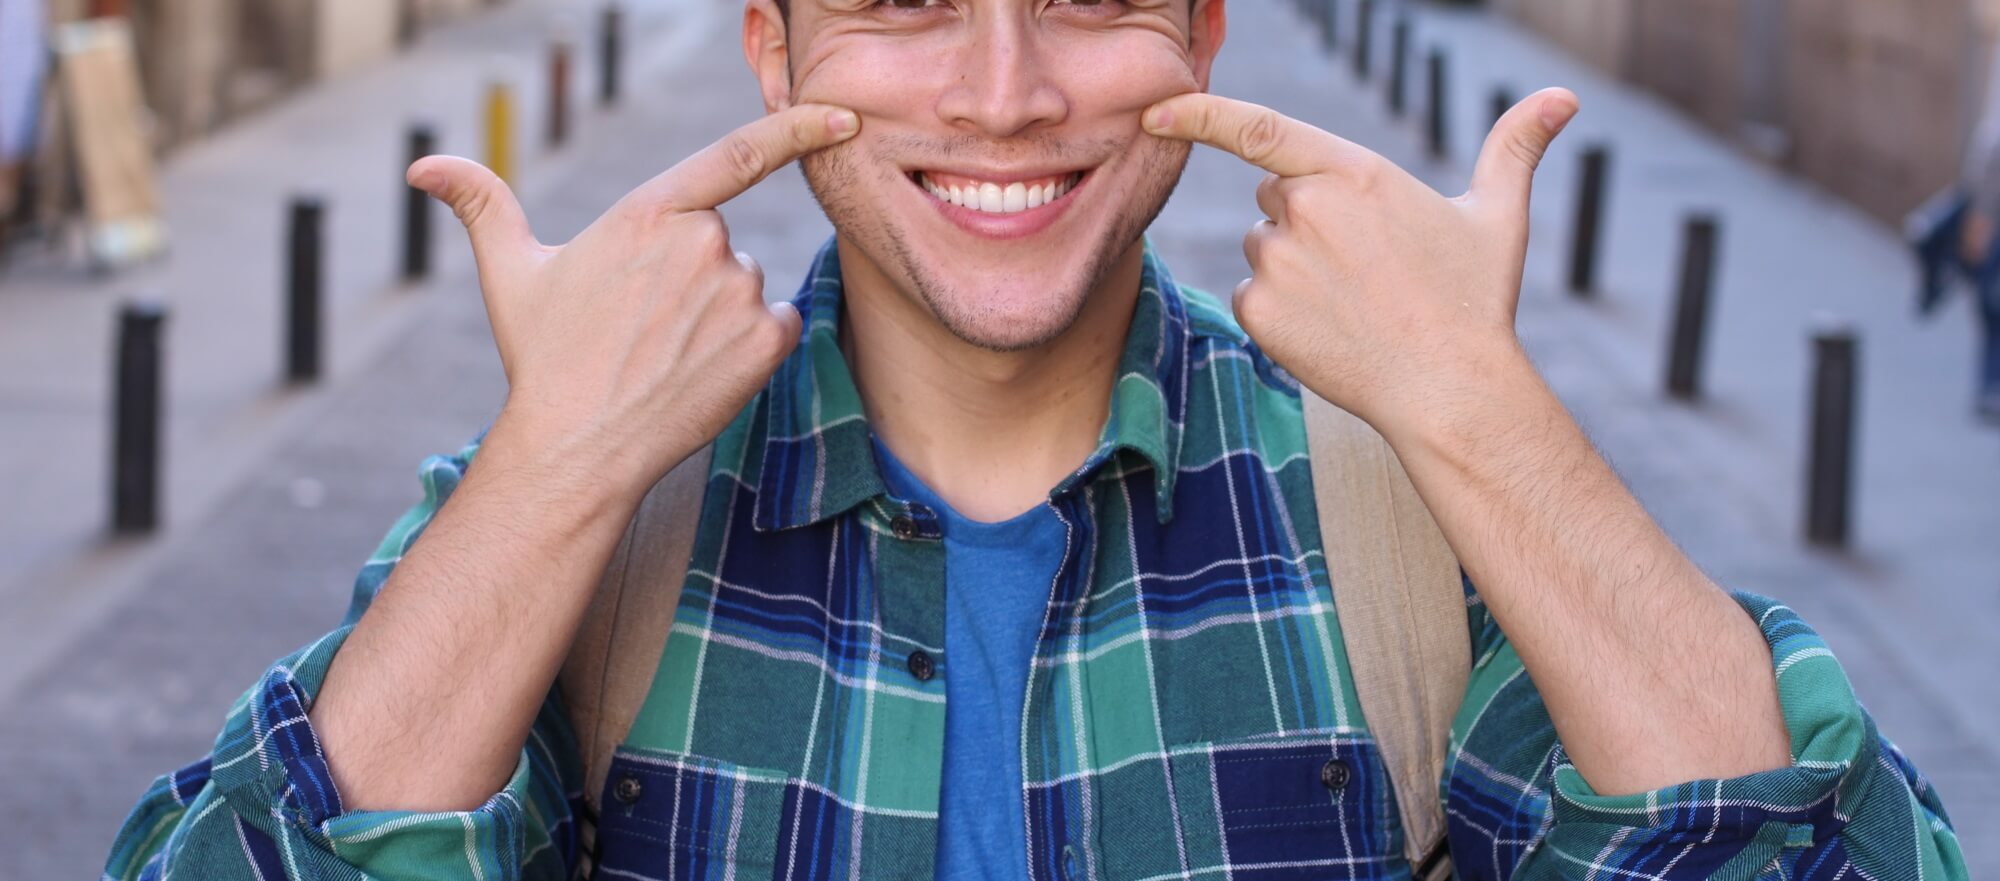 Man holding up the corners of his mouth in a smile